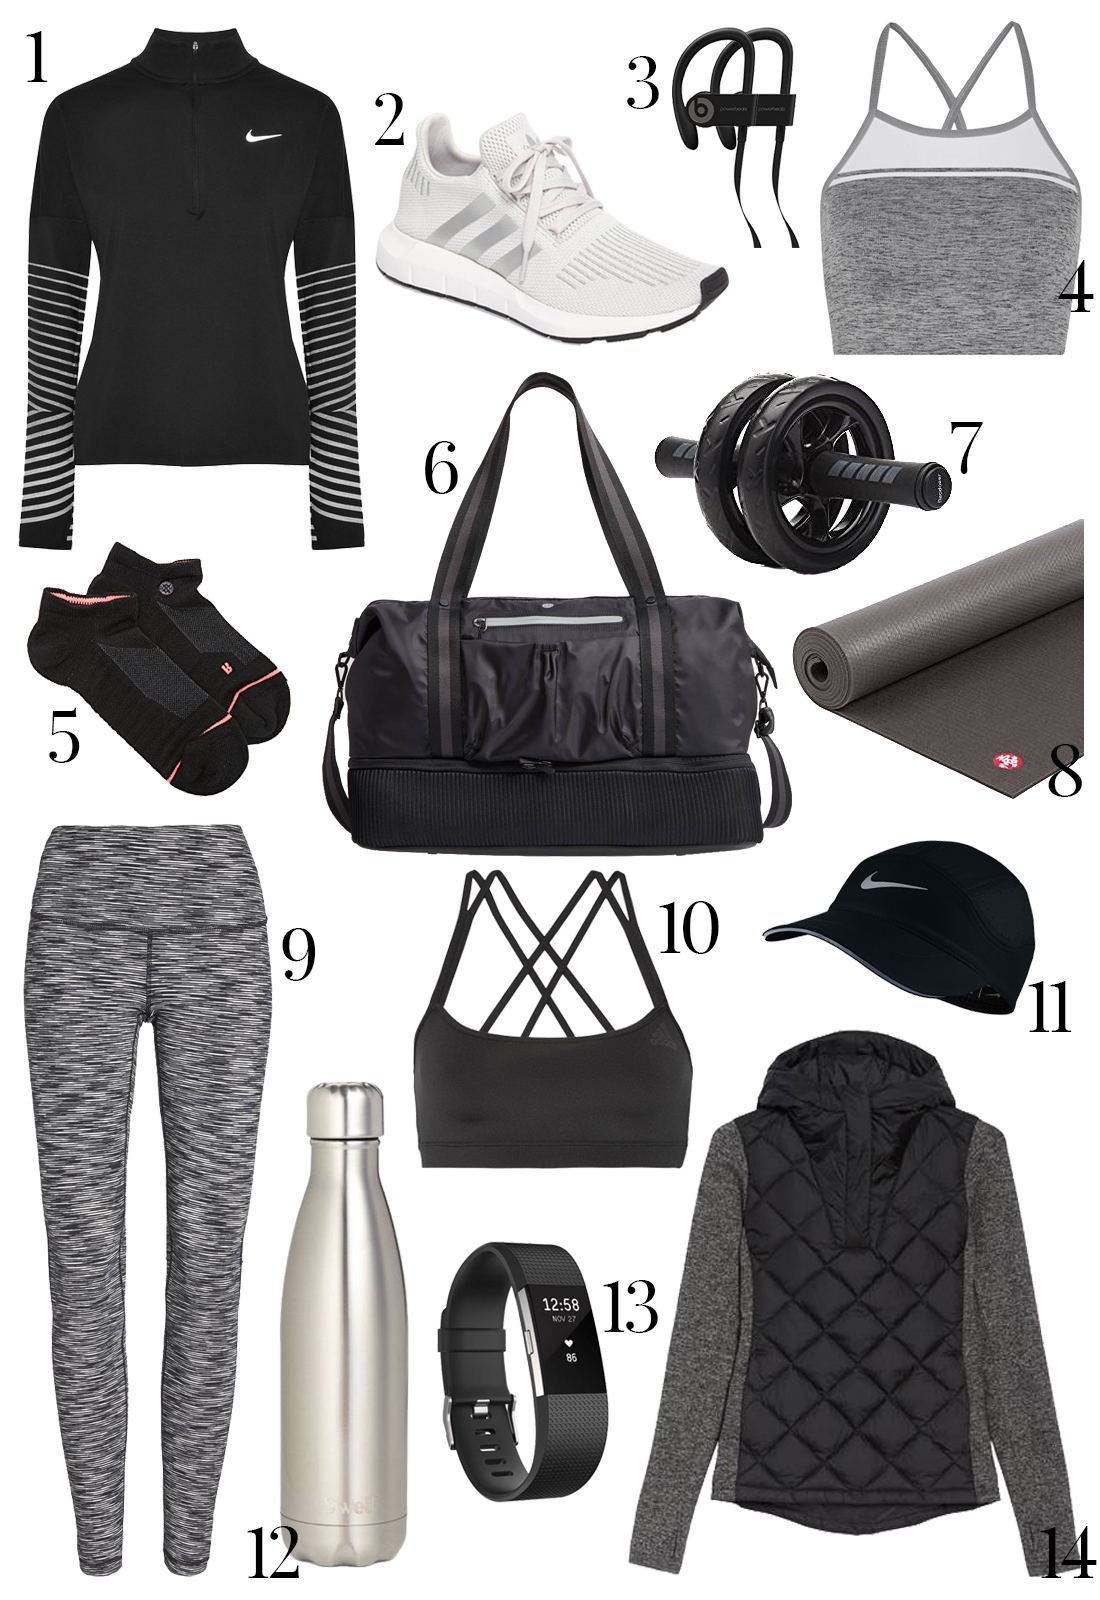 Holiday Gifts Fitness Gifts Activewear gifts